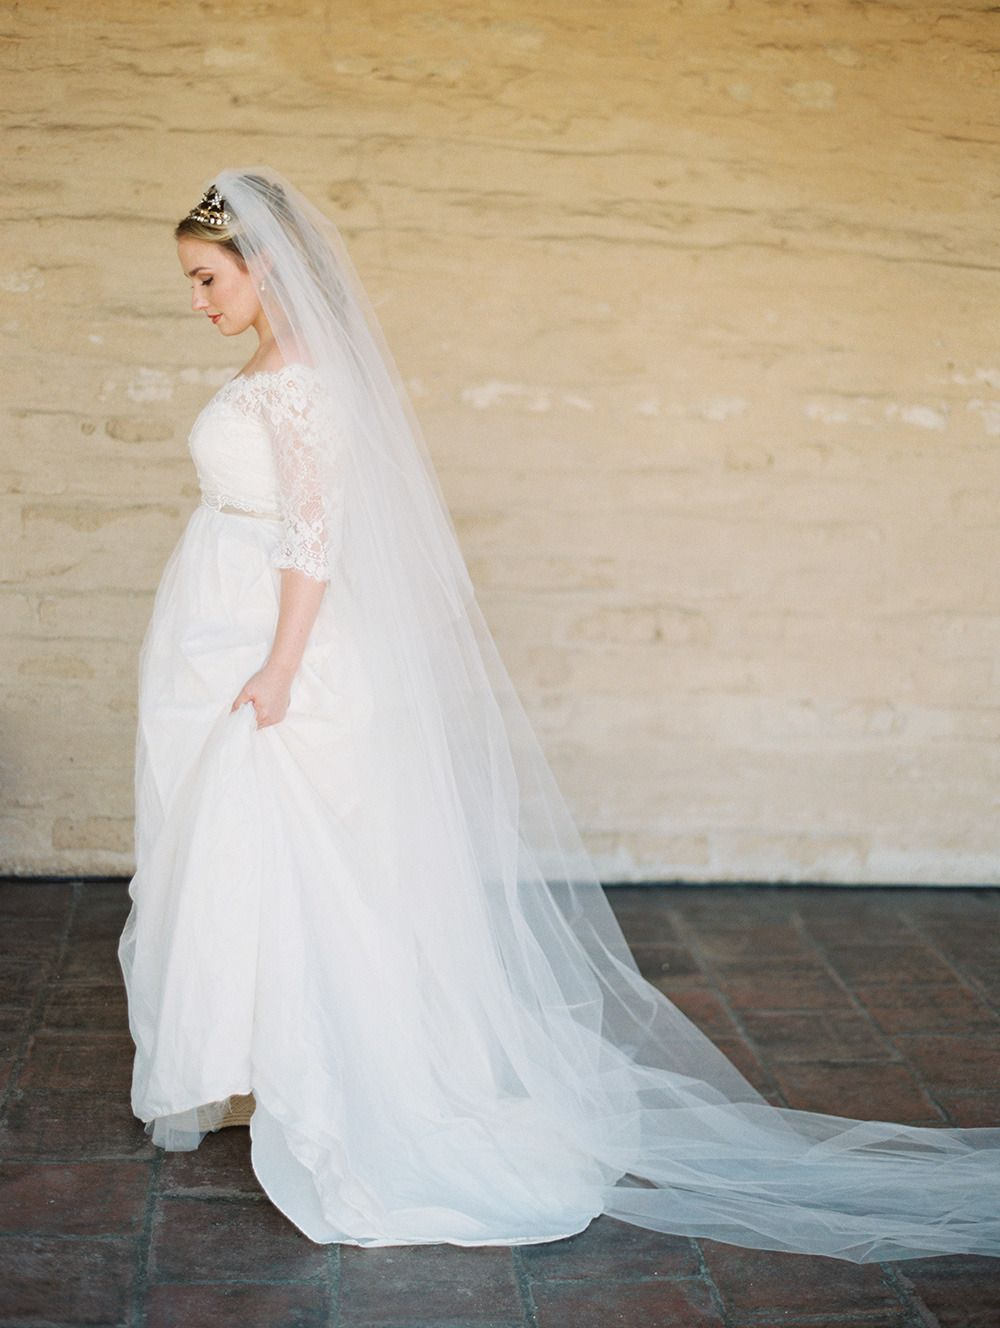 the veil + headpiece and lace gown = perfection! | Photography: Lane Dittoe - lanedittoe.com